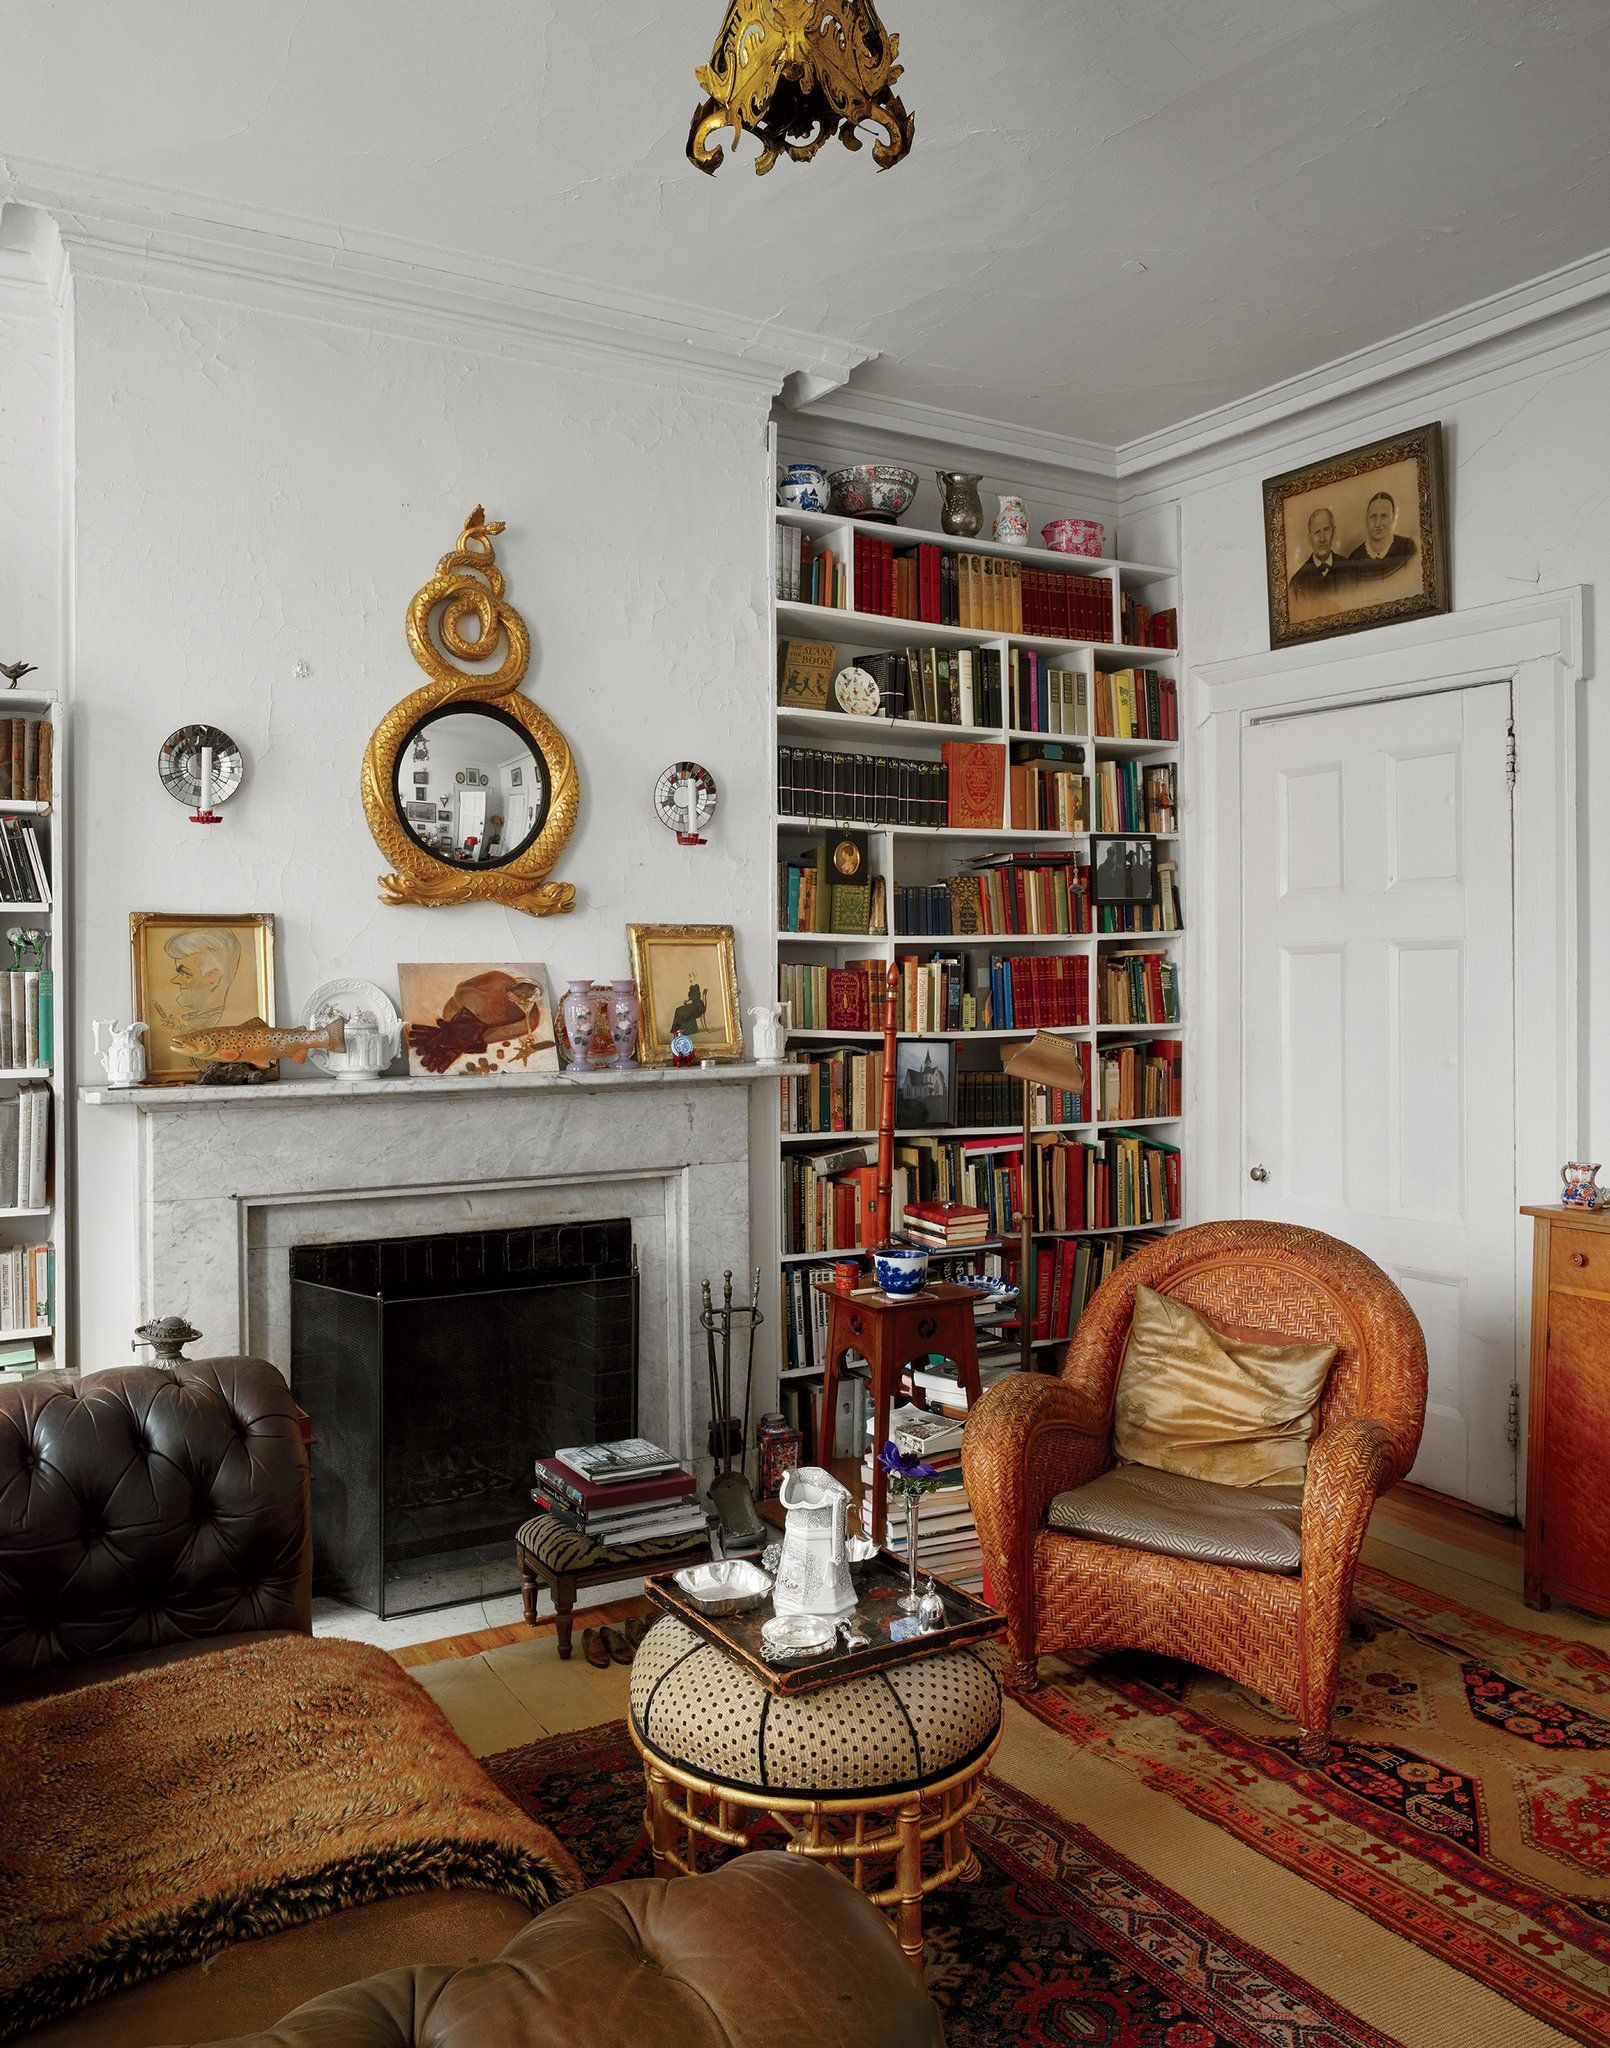 Apartment 4 a corner of simpsons antiques filled living room photo byanthony cotsifas a group of friends in a townhouse on east ninth street live a